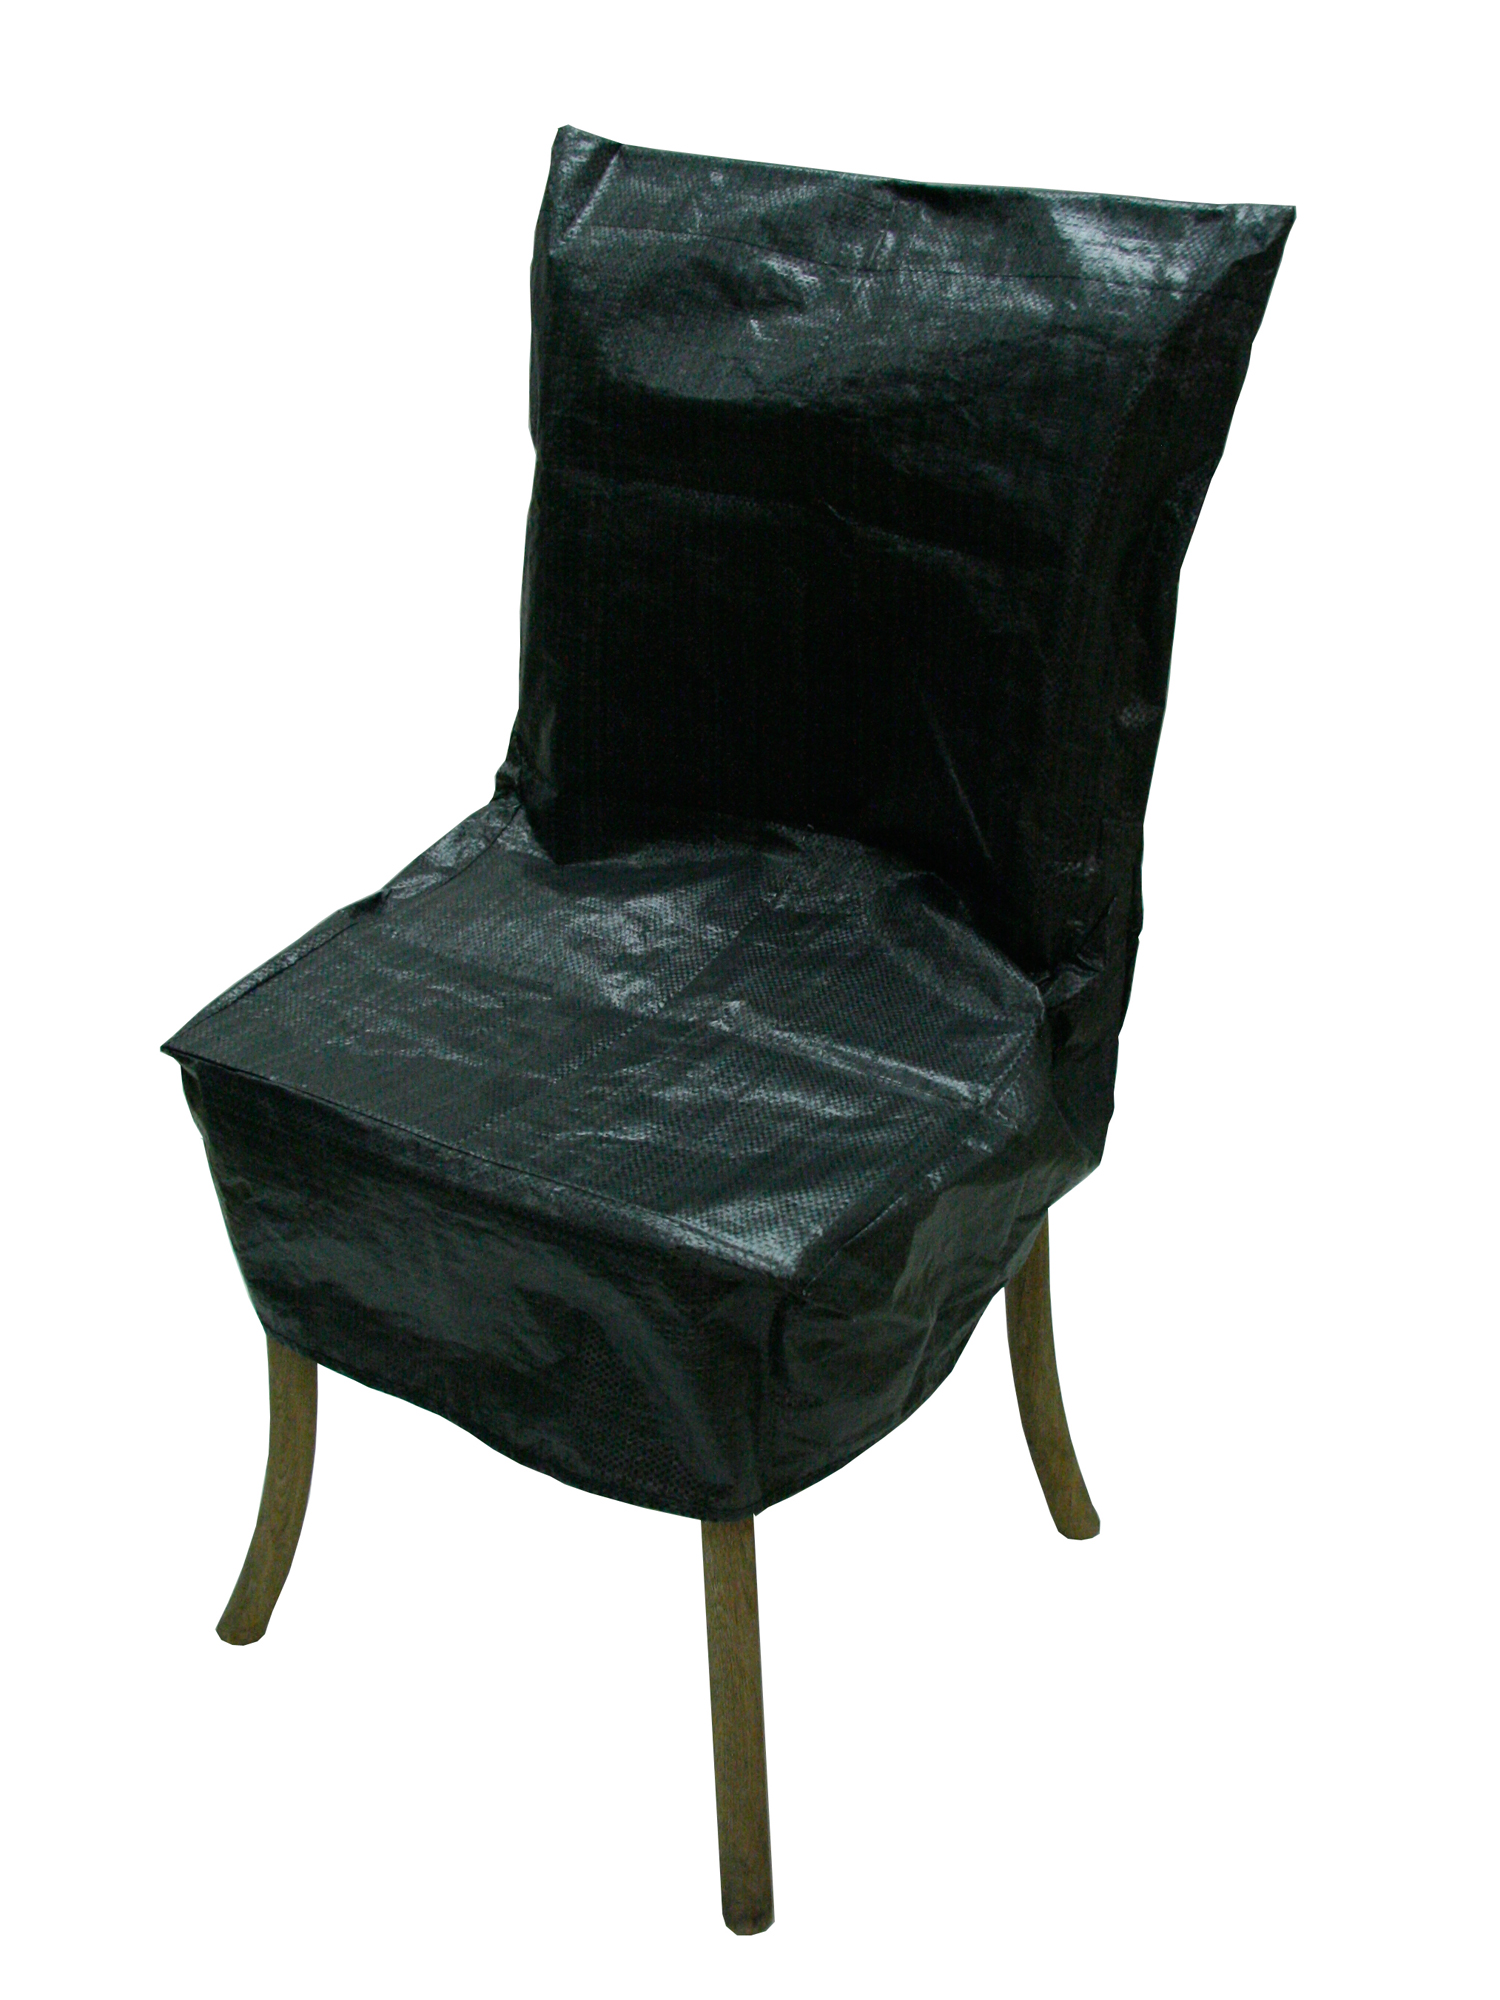 Waterproof Chair Covers Chair Covers Waterproof